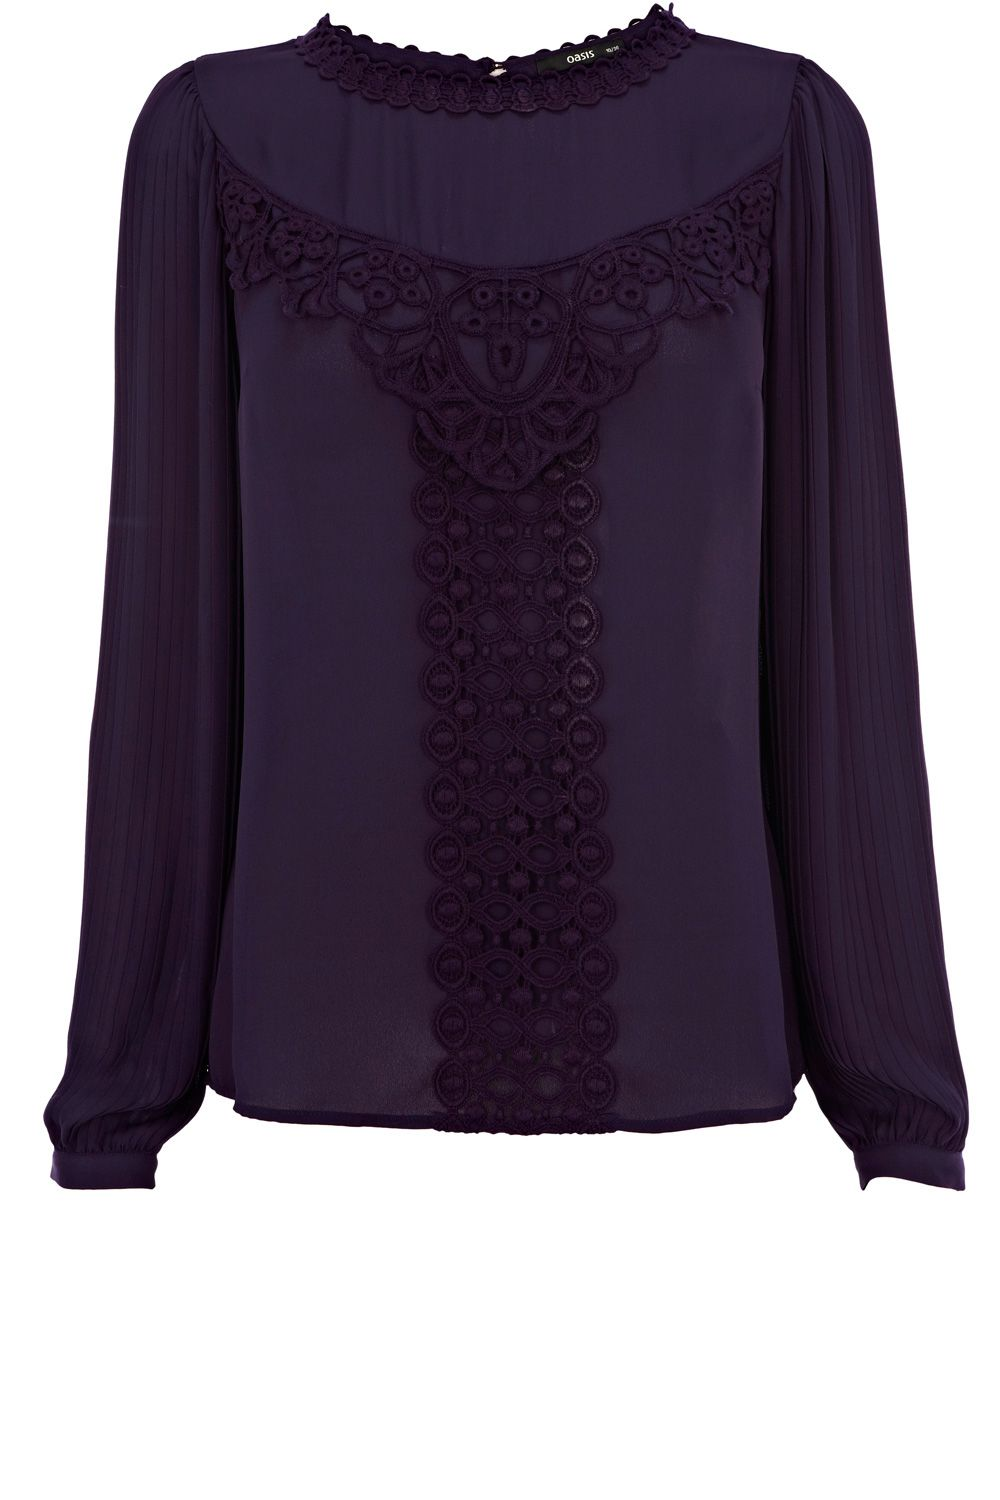 Lace dress styles for funeral  This Oasis pleat sleeve top features lace panelling across the front